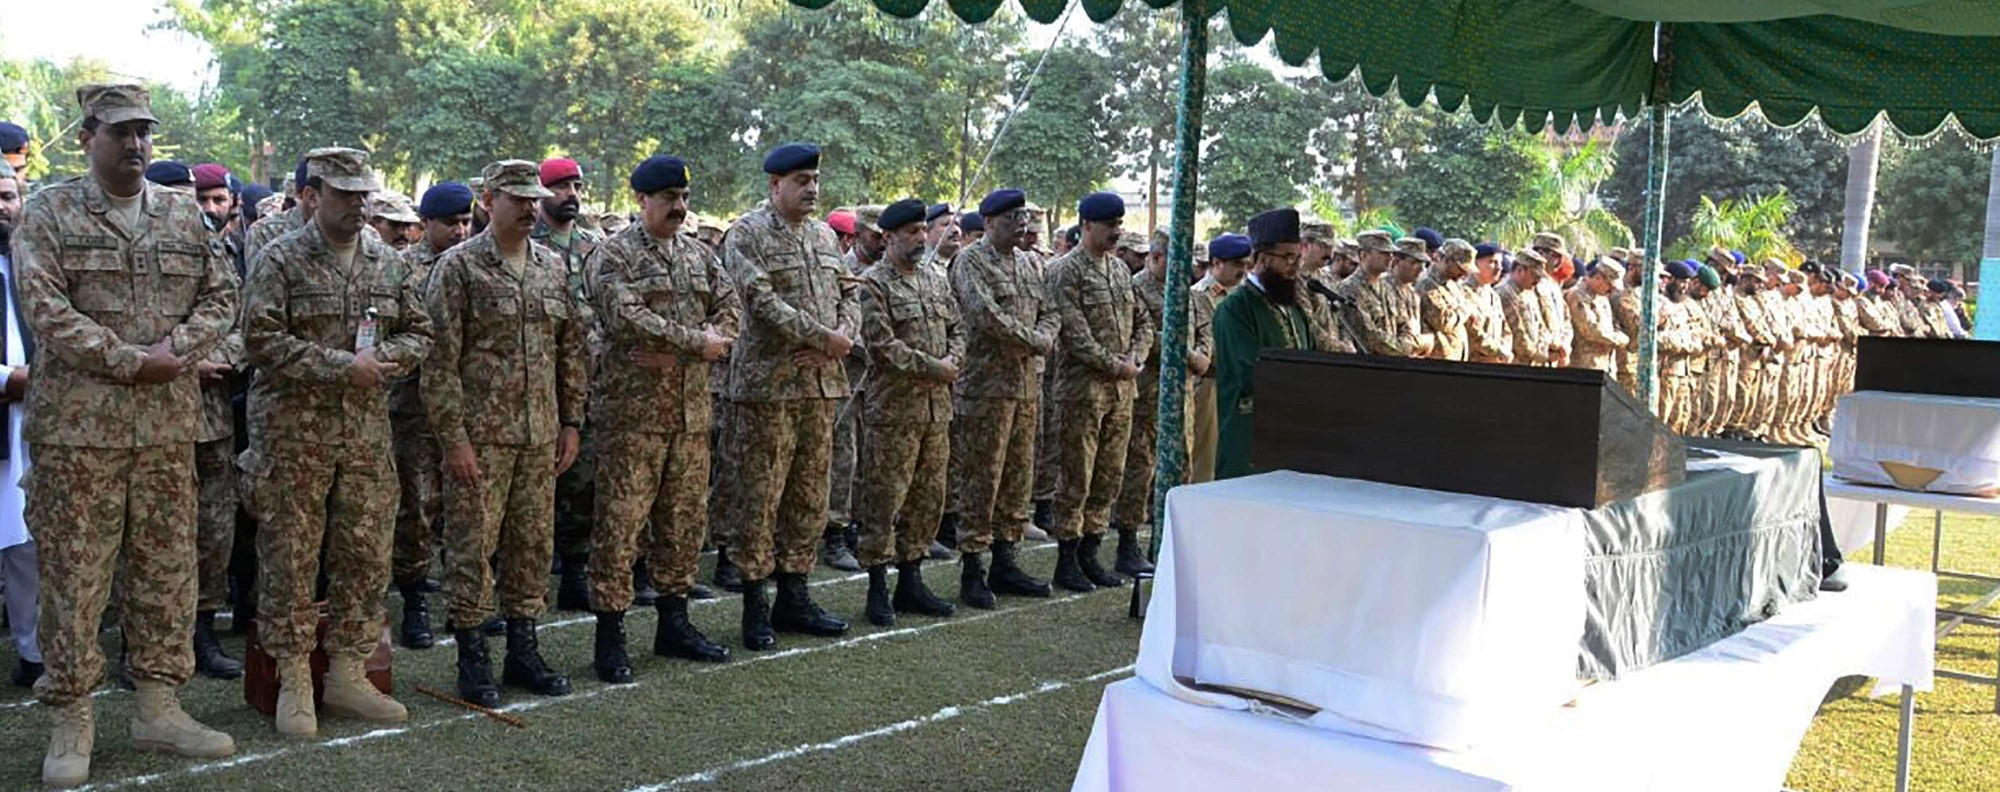 A funeral for Pakistan soldiers killed in Kashmir. Photo: AFP